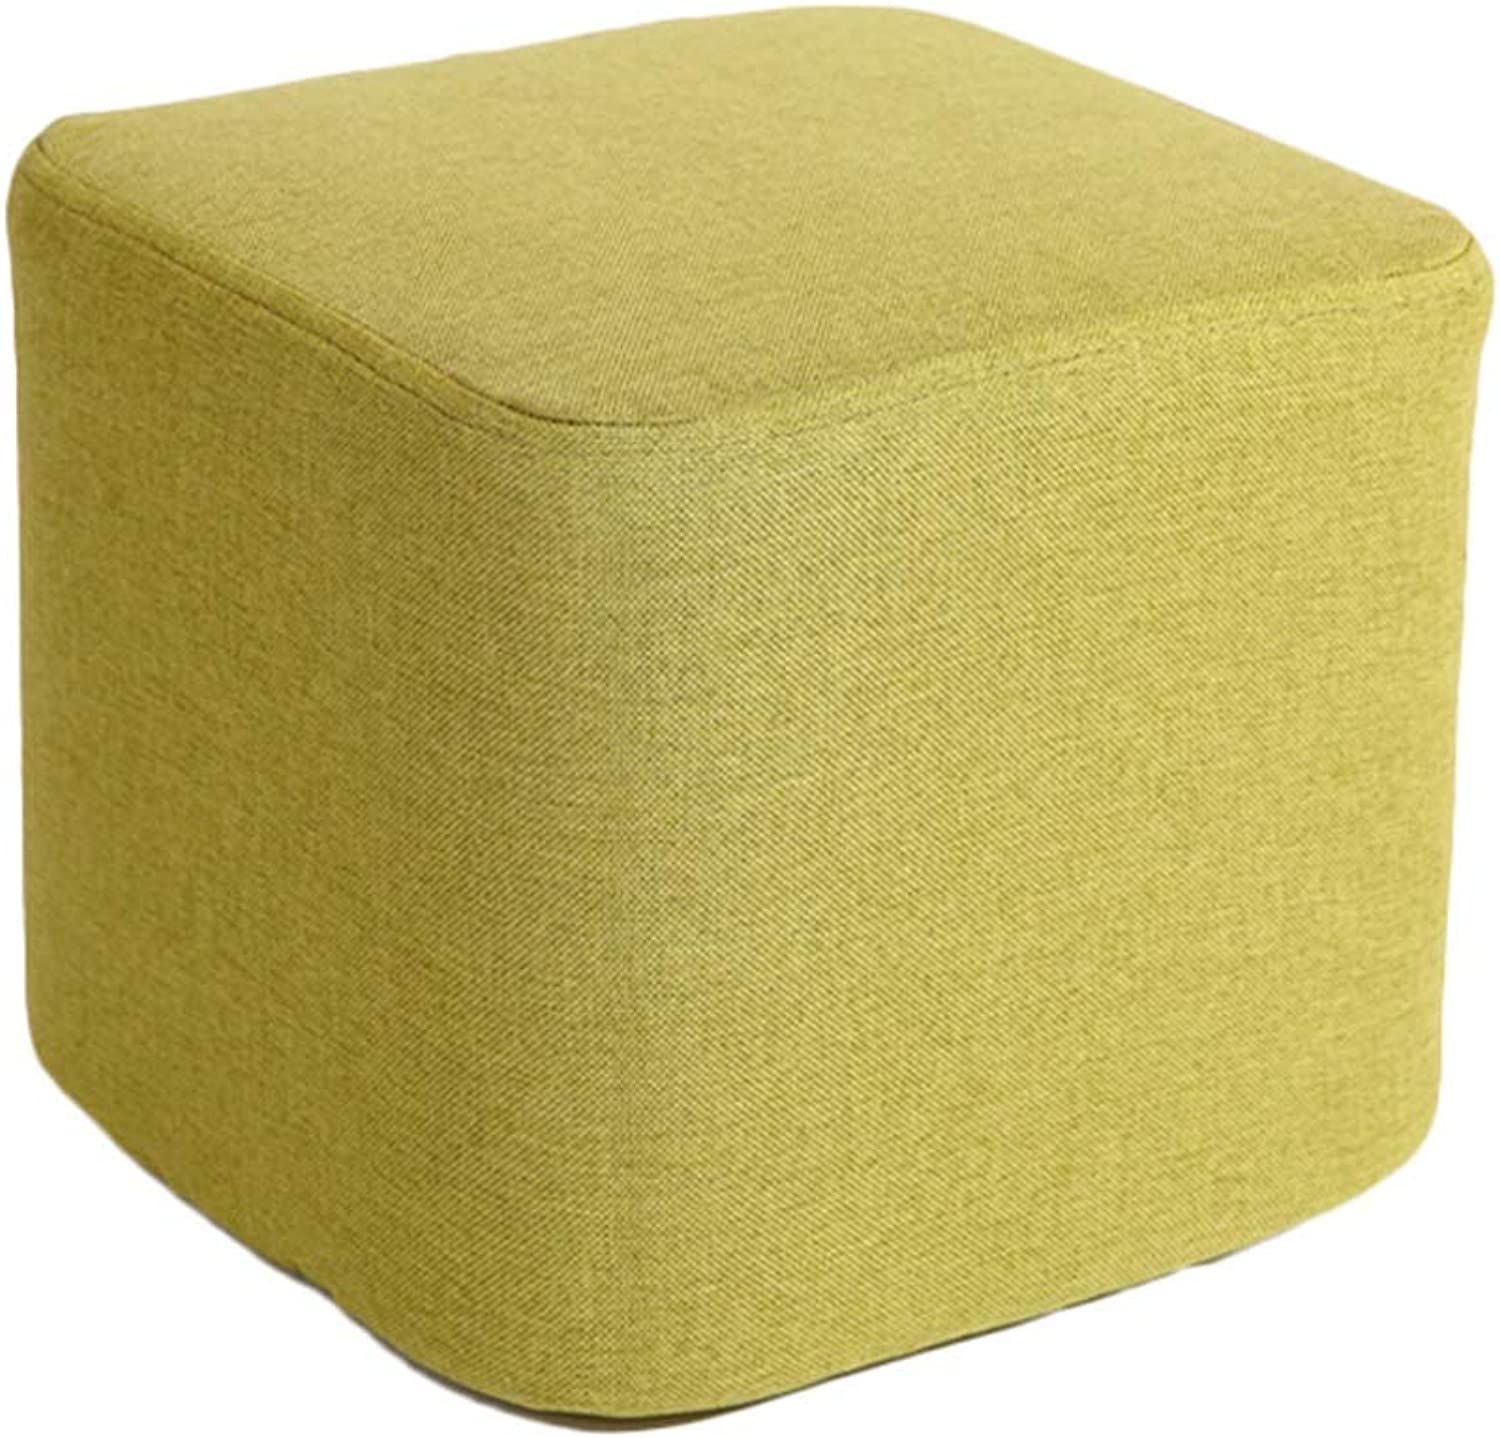 AGLZWY Footstool Sofa Stool Multipurpose Cloth Square Removable Washable Breathable Non-Slip Space Saving Bearing Strong Fashion Living Room Change shoes Dressing Coffee Table